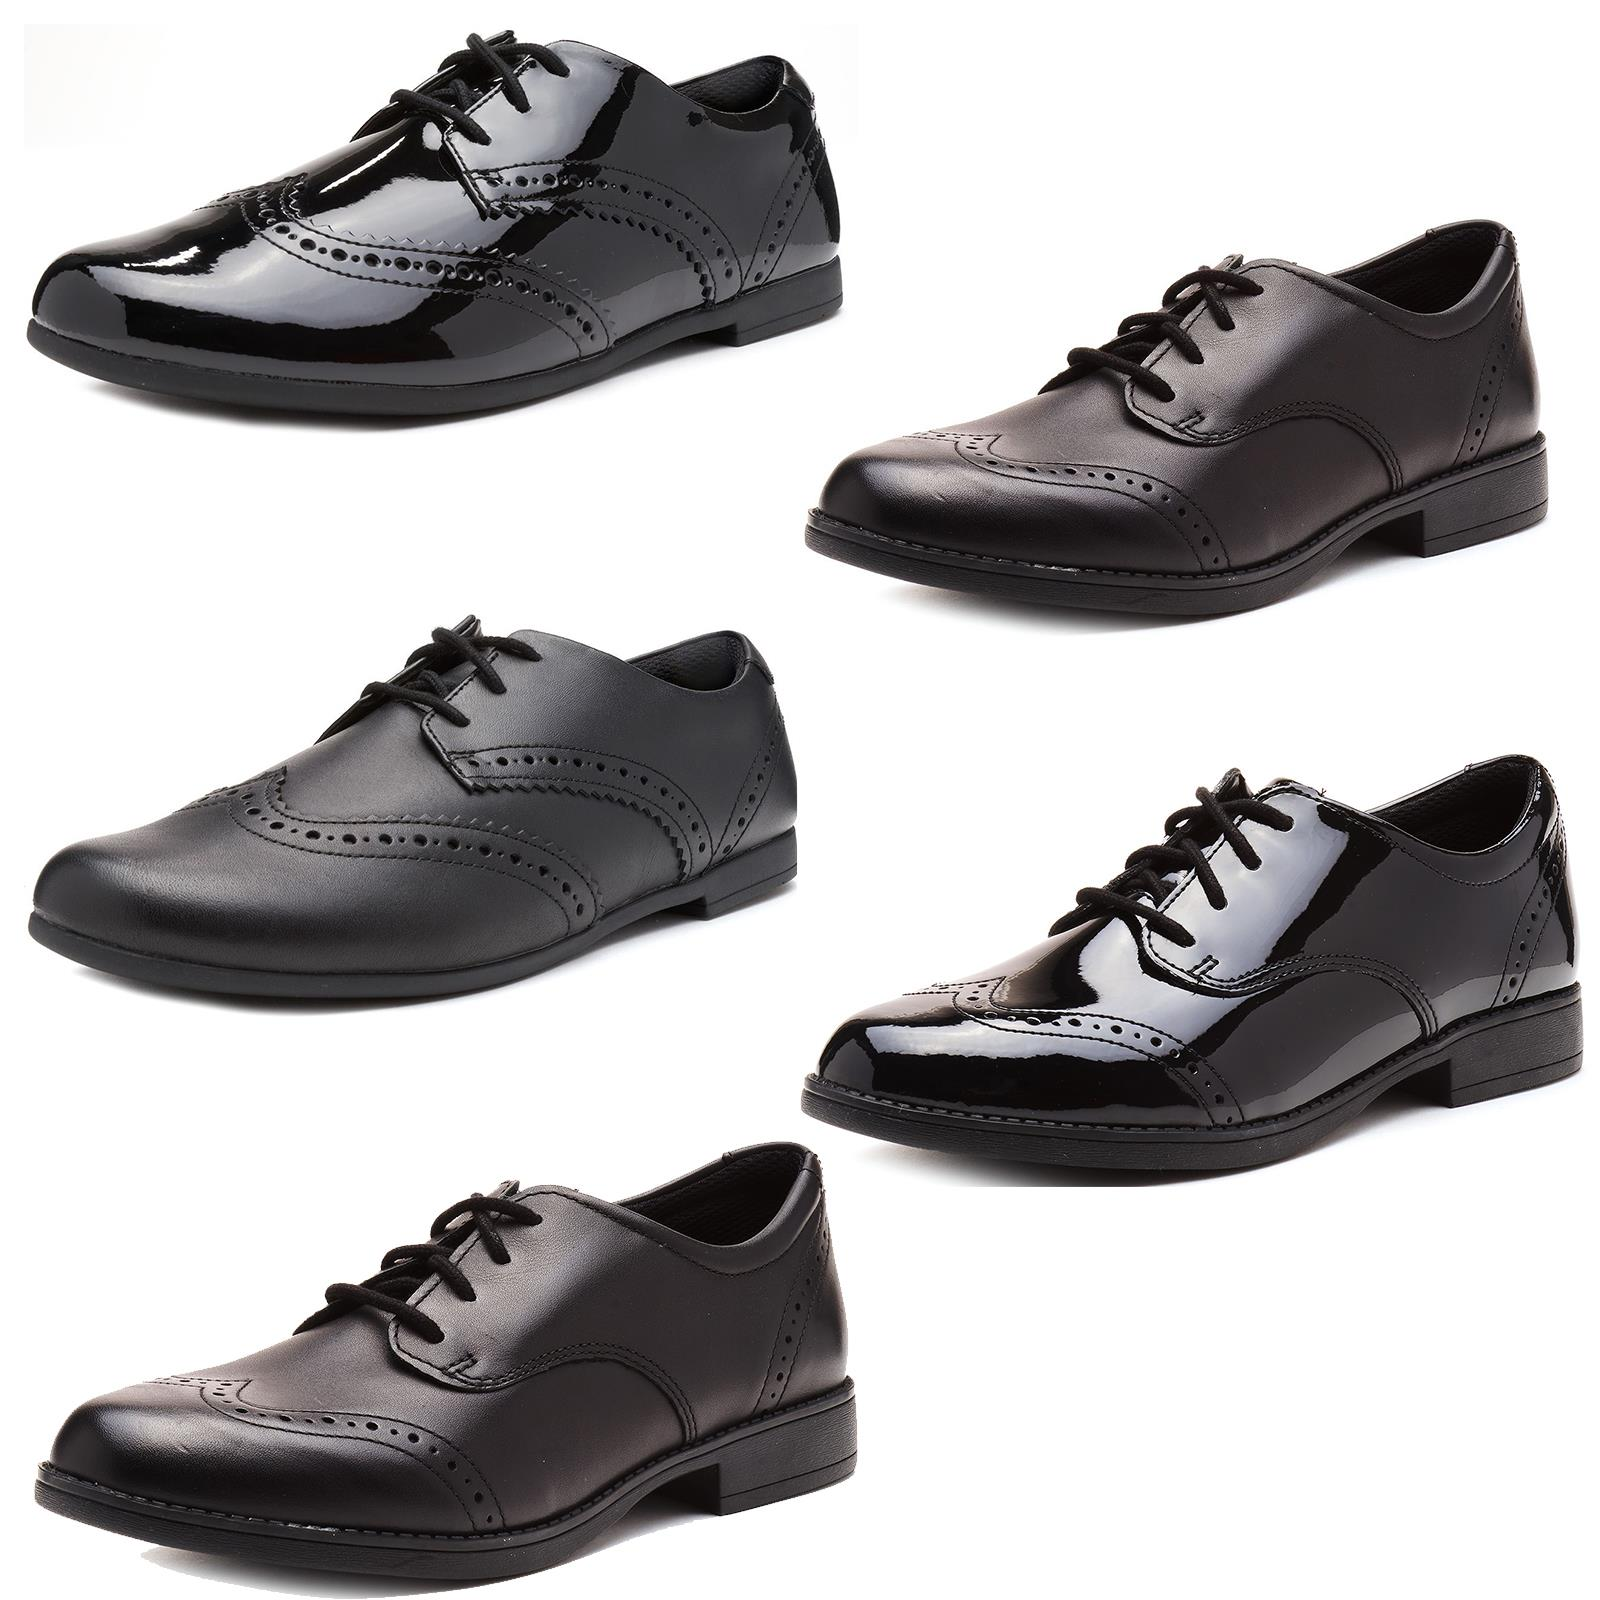 Details about Clarks Sami Walk Kids Back to School Lace Up Brogue Leather Shoes Black & Patent